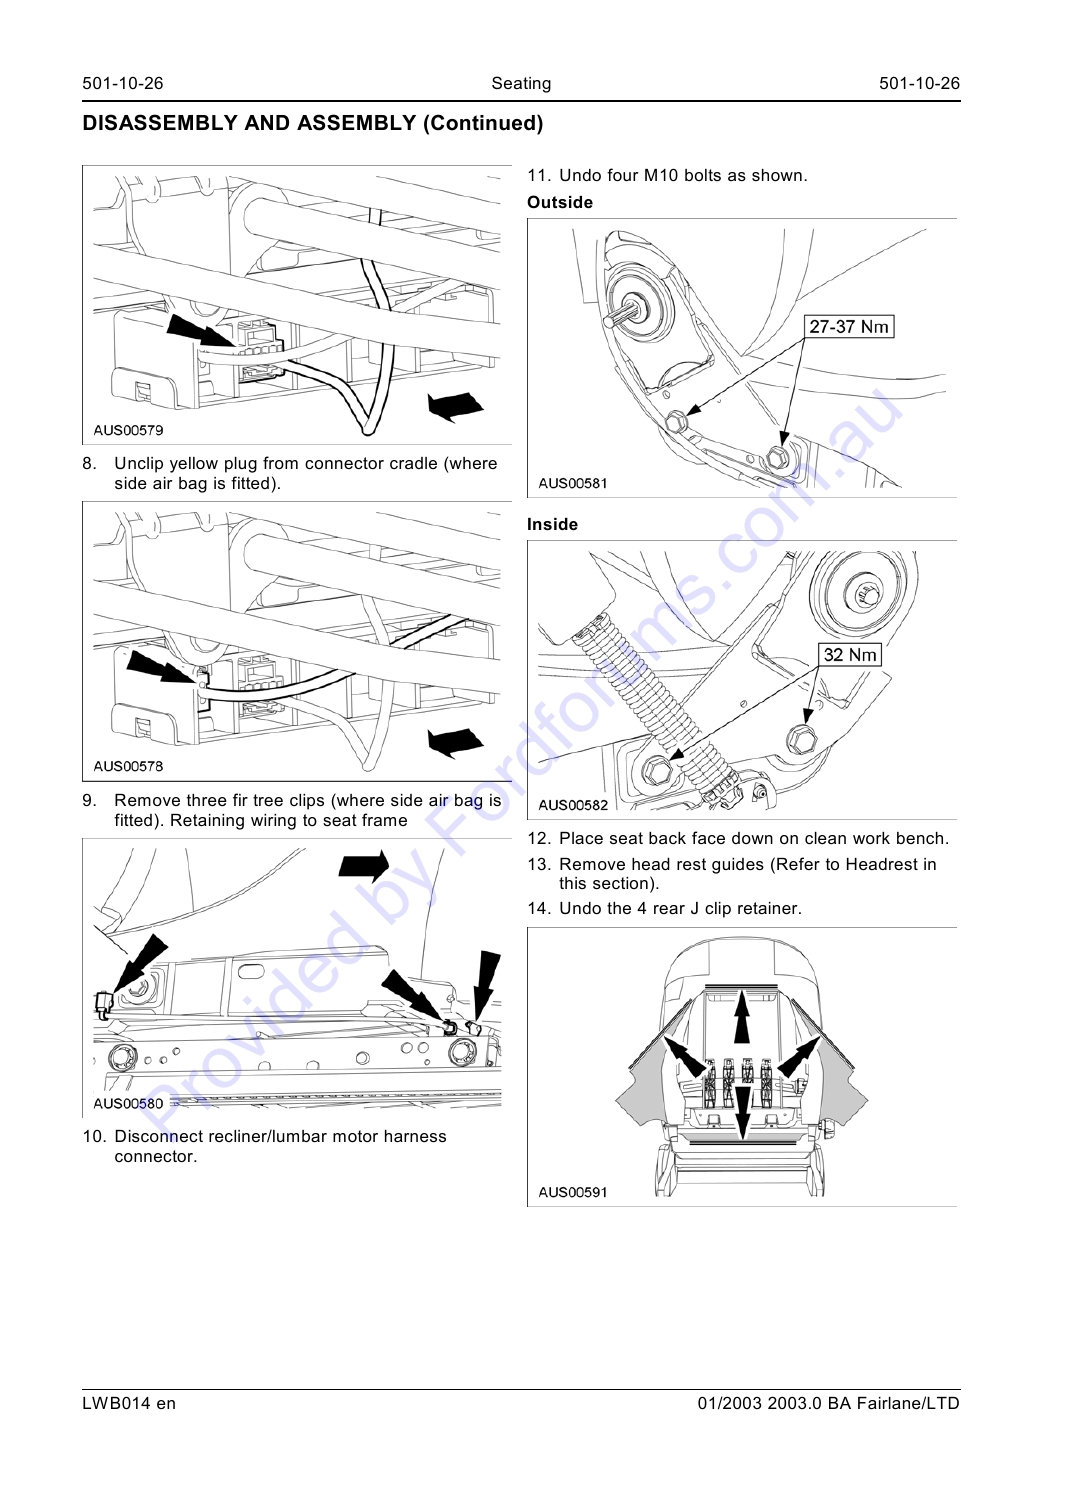 Ba Fairlane Wsm Page 1 Of 10 Wiring Harness Clips Removal Img